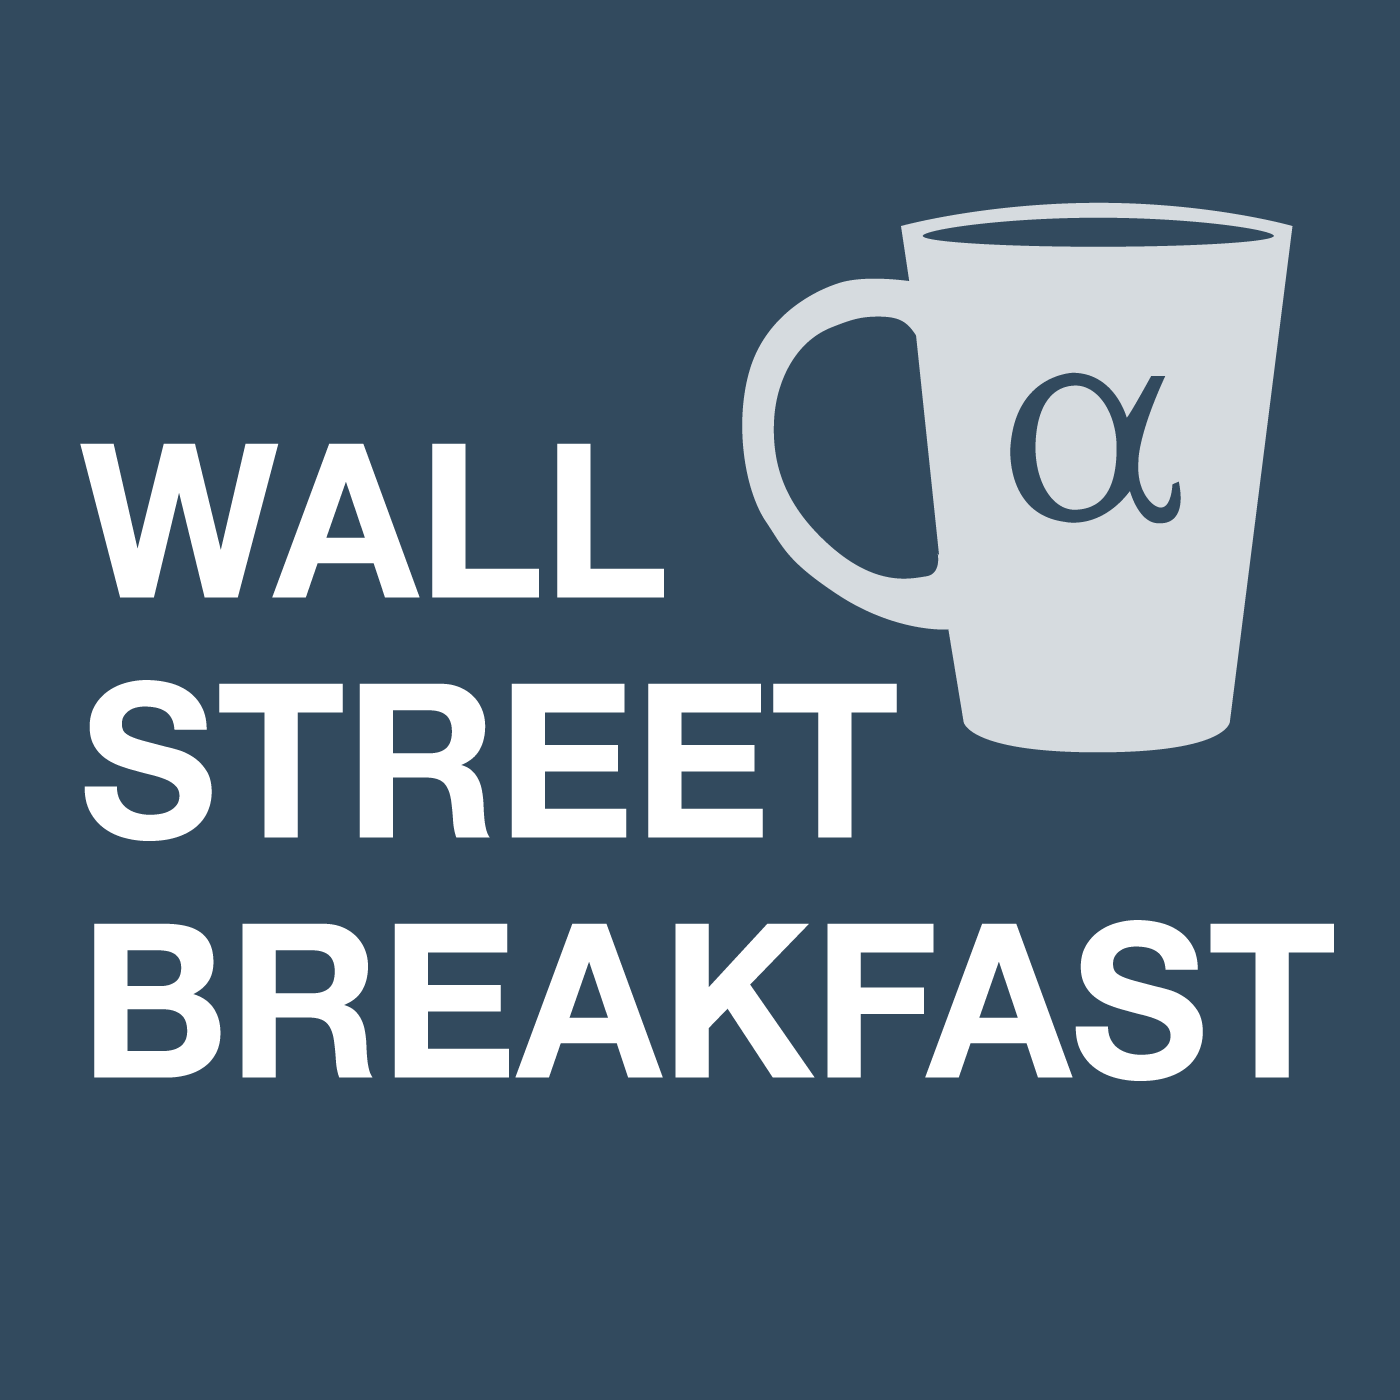 Wall Street Breakfast July 23: Tesla Sets Up For S&P 500 Inclusion